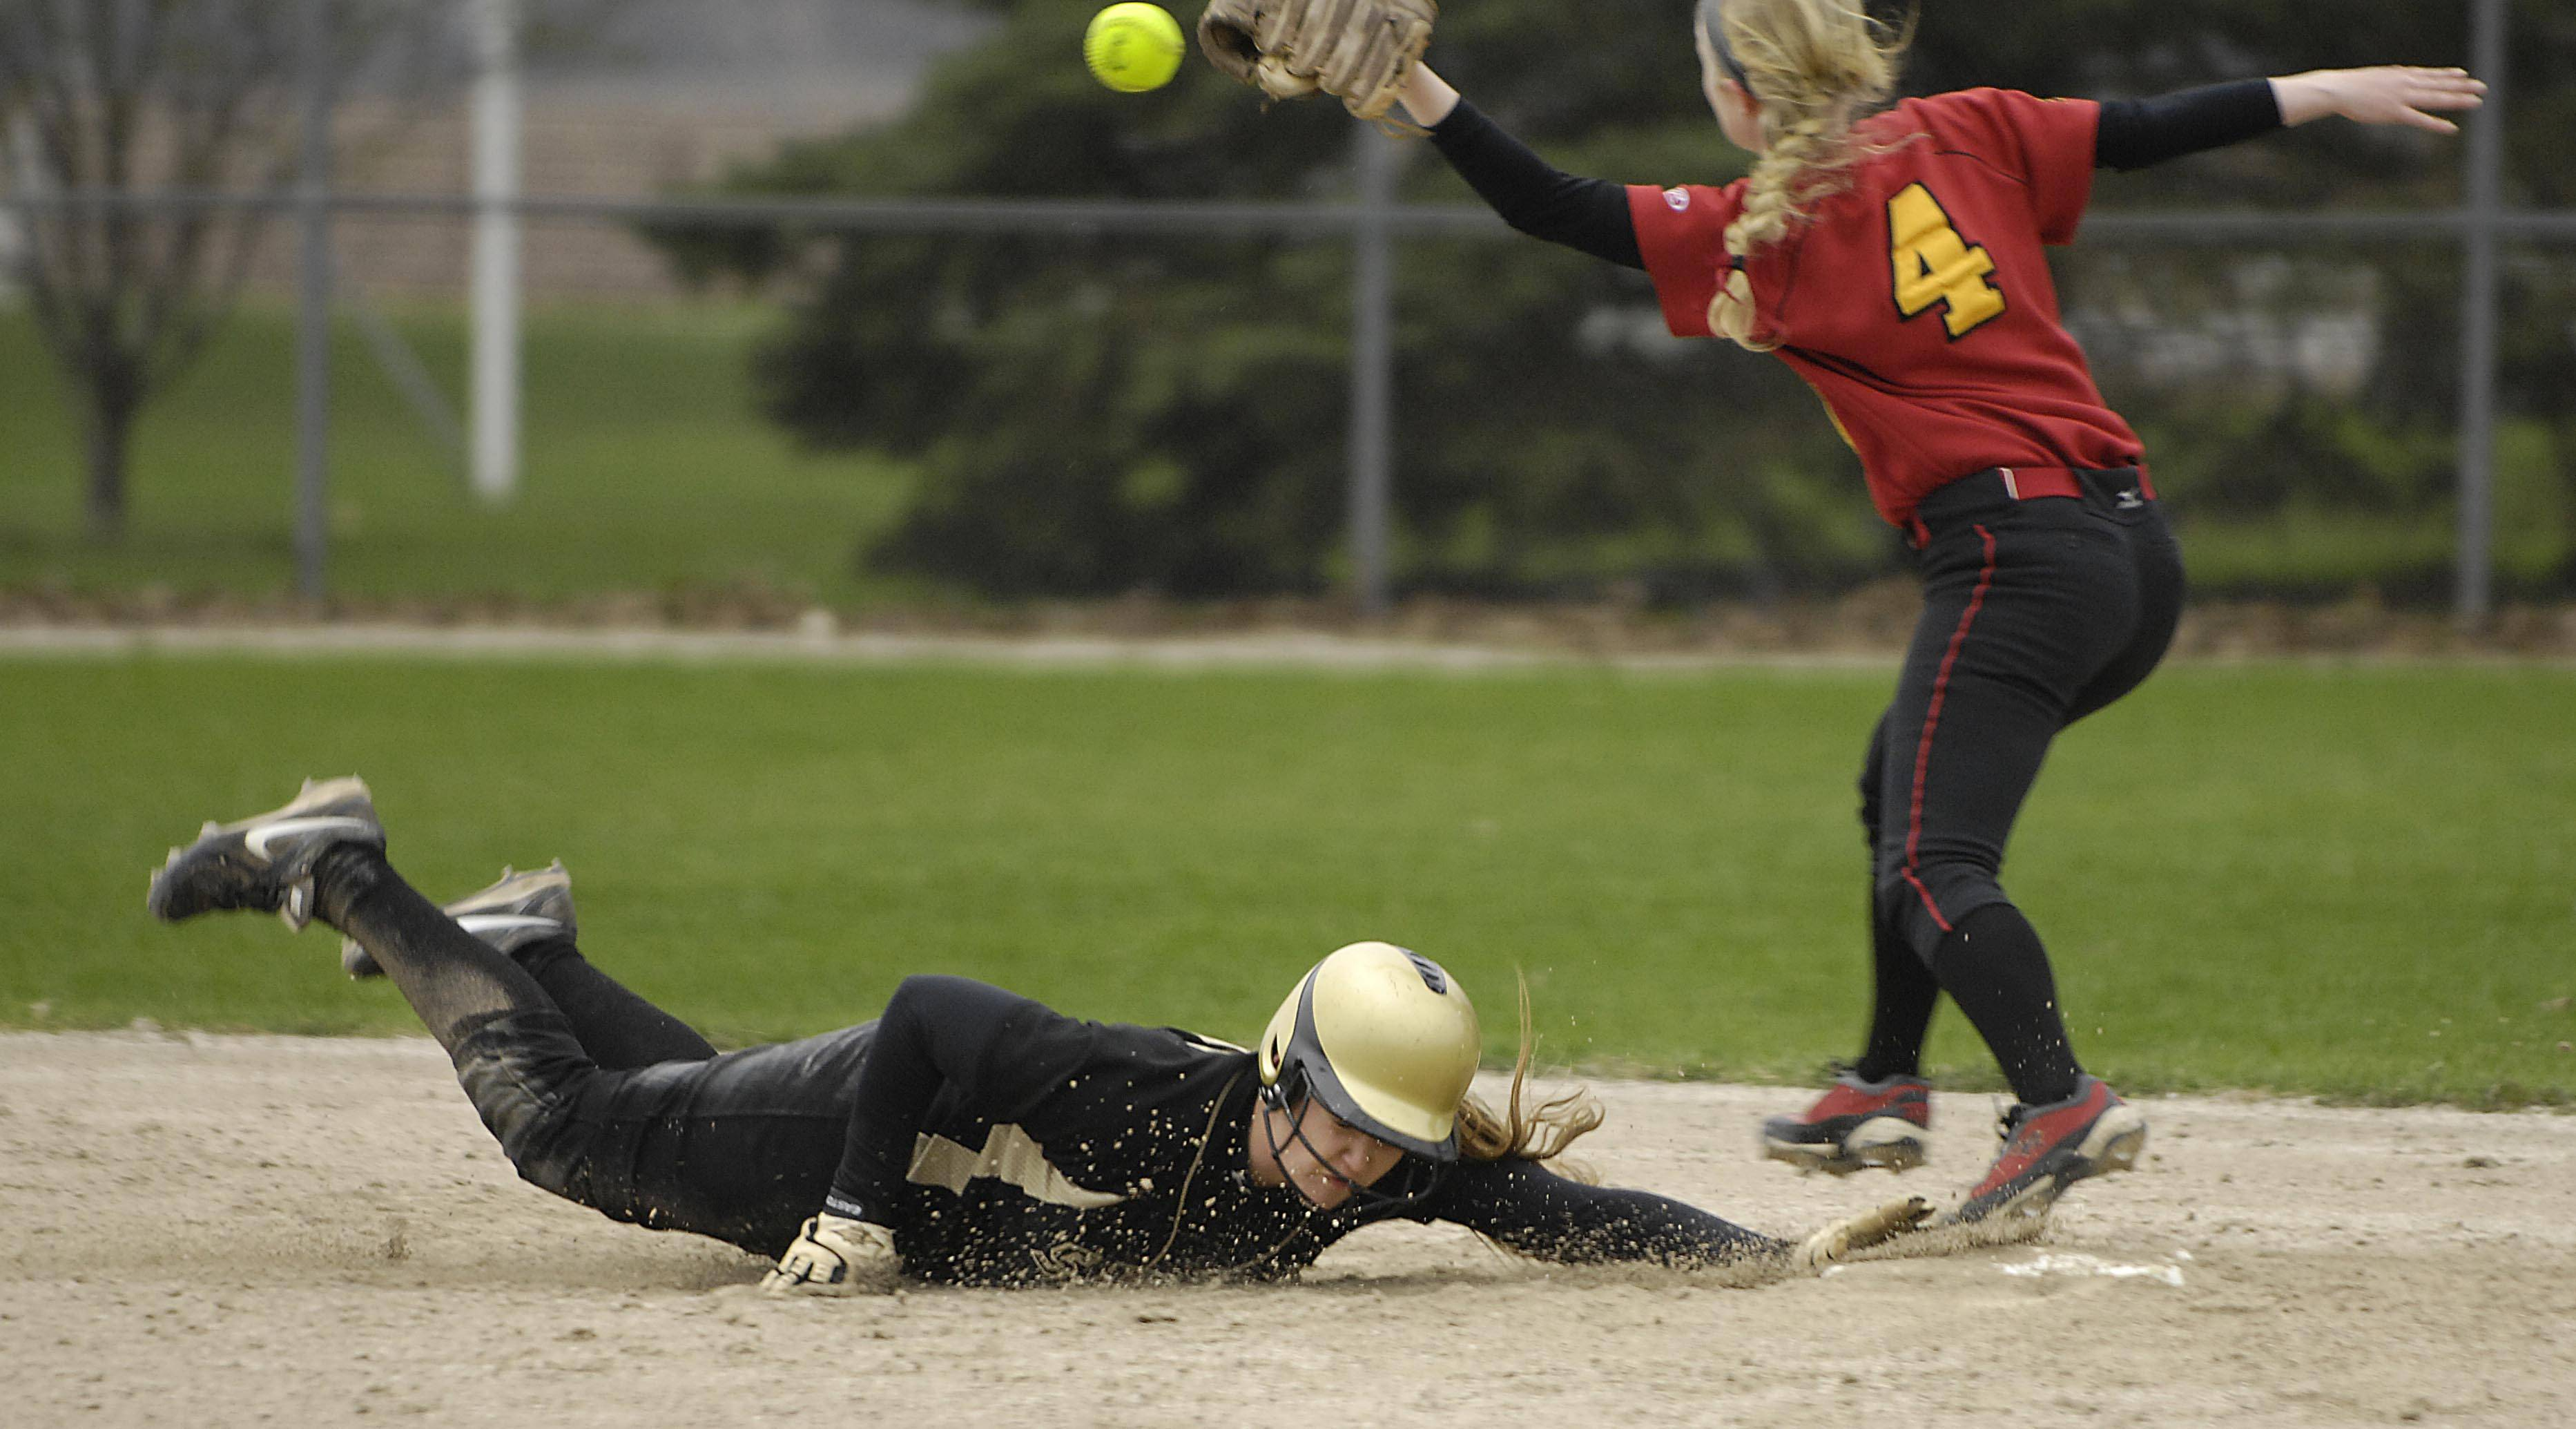 Streamwood's Melissa Malcolm dives safely back to second base as the throw from the outfield gets away from Batavia second baseman Elyse Burns in the fifth inning Monday in Batavia. Malcolm scored later in the inning to put her team up 6-3.